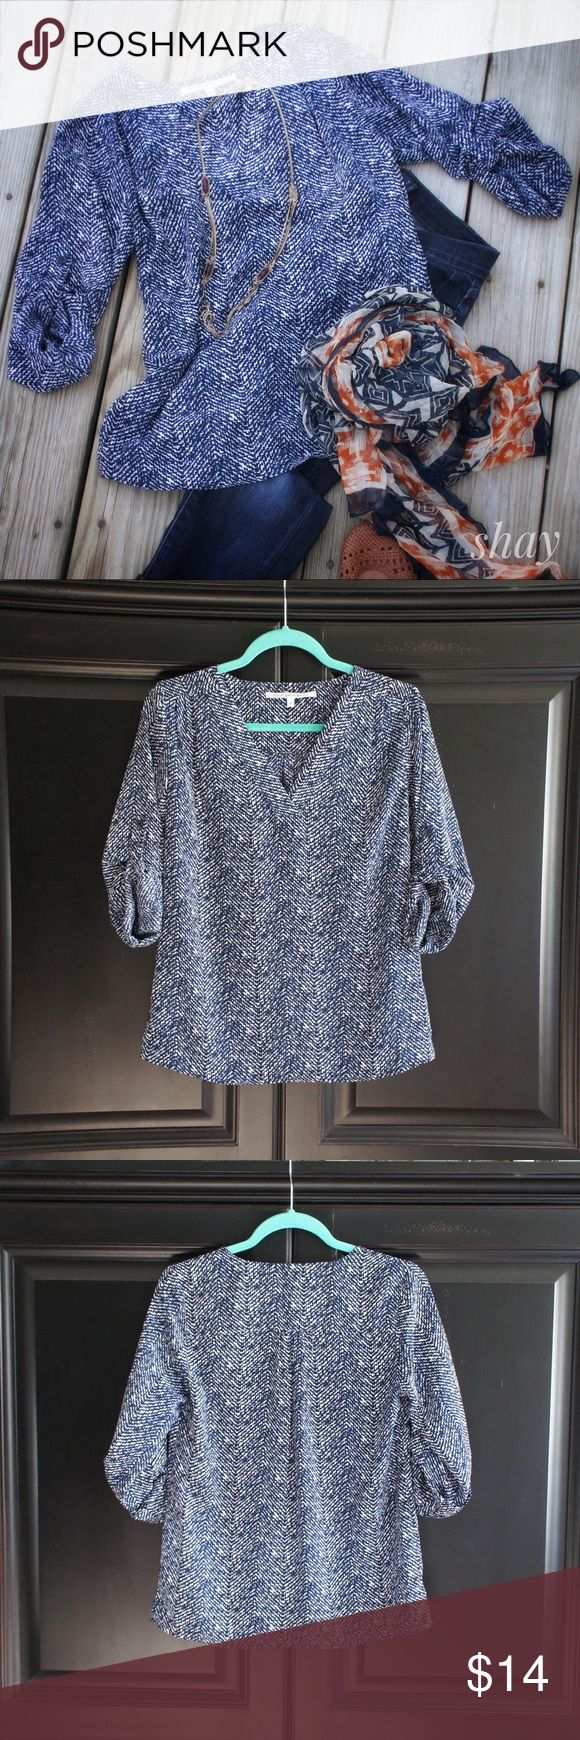 """3/4 Button Sleeve Top Cute 3/4 sleeve top by Collective Concepts. Looks great with denim capris. 100% Polyester marked Dry Clean Only. Which is why this is marked Priced To Sell! Bust 18"""" across and 24.5"""" overall length. Sized as XS but this is a little oversized and could also fit small. Tops Blouses"""